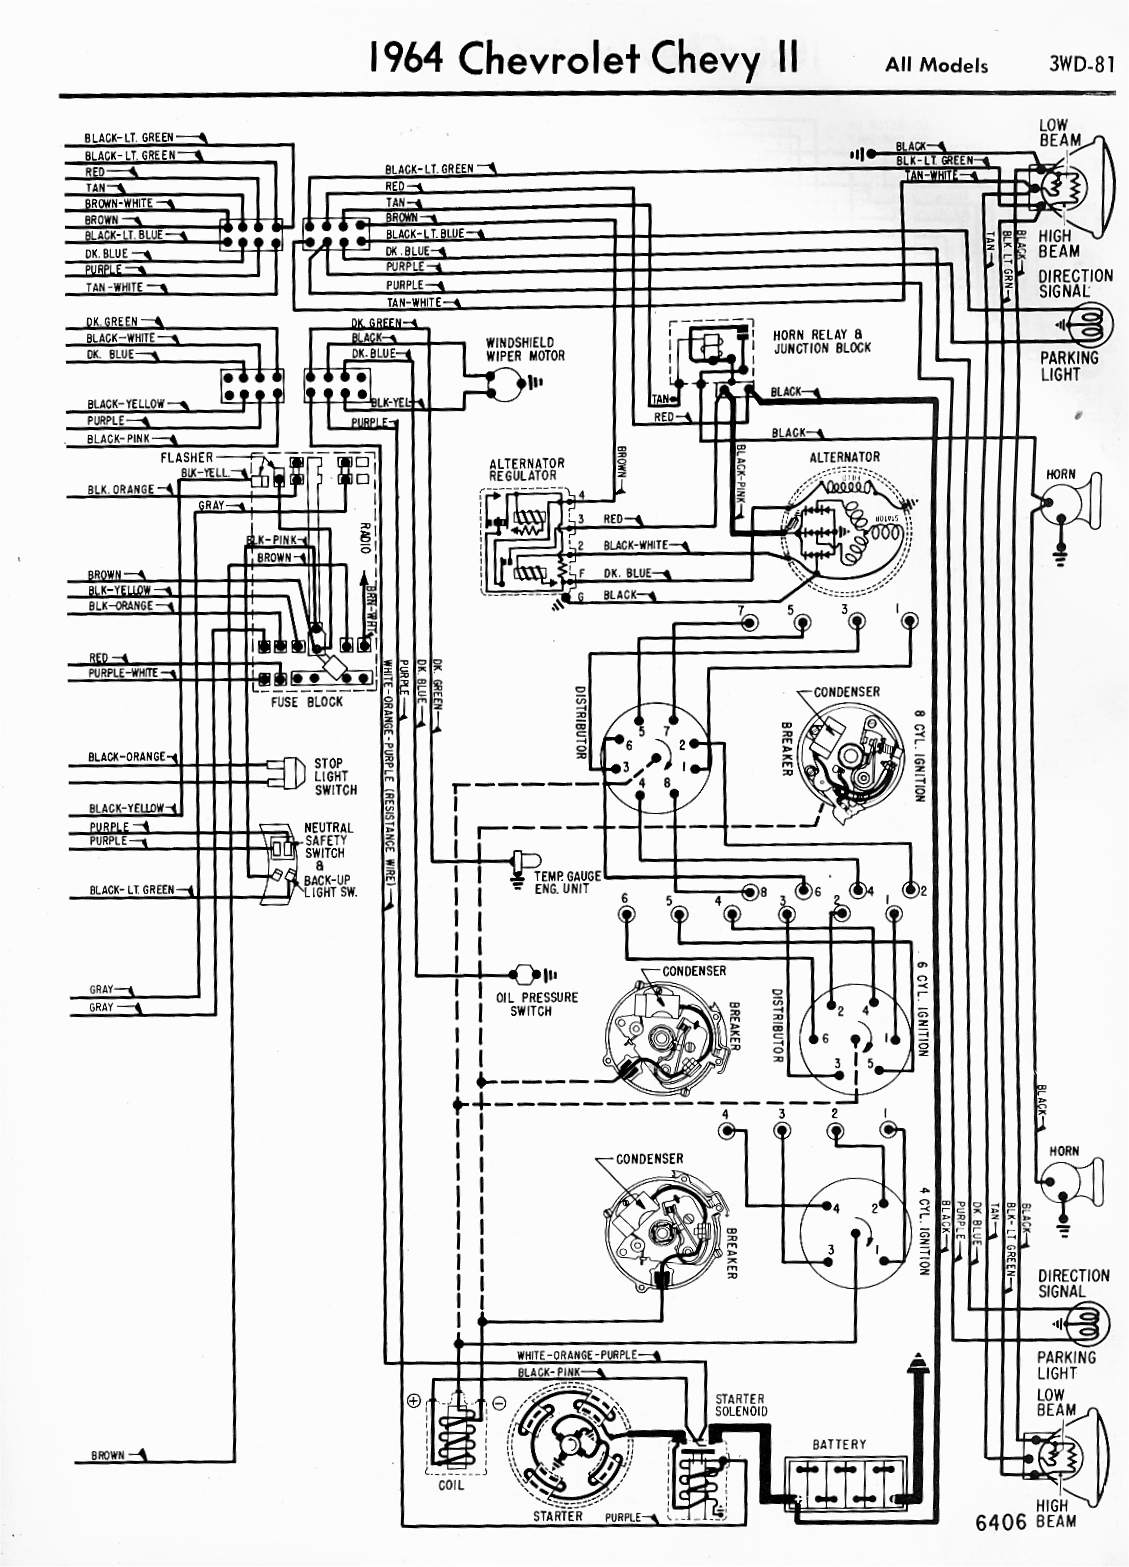 1964 impala wiring diagram w wiring impala diagrams